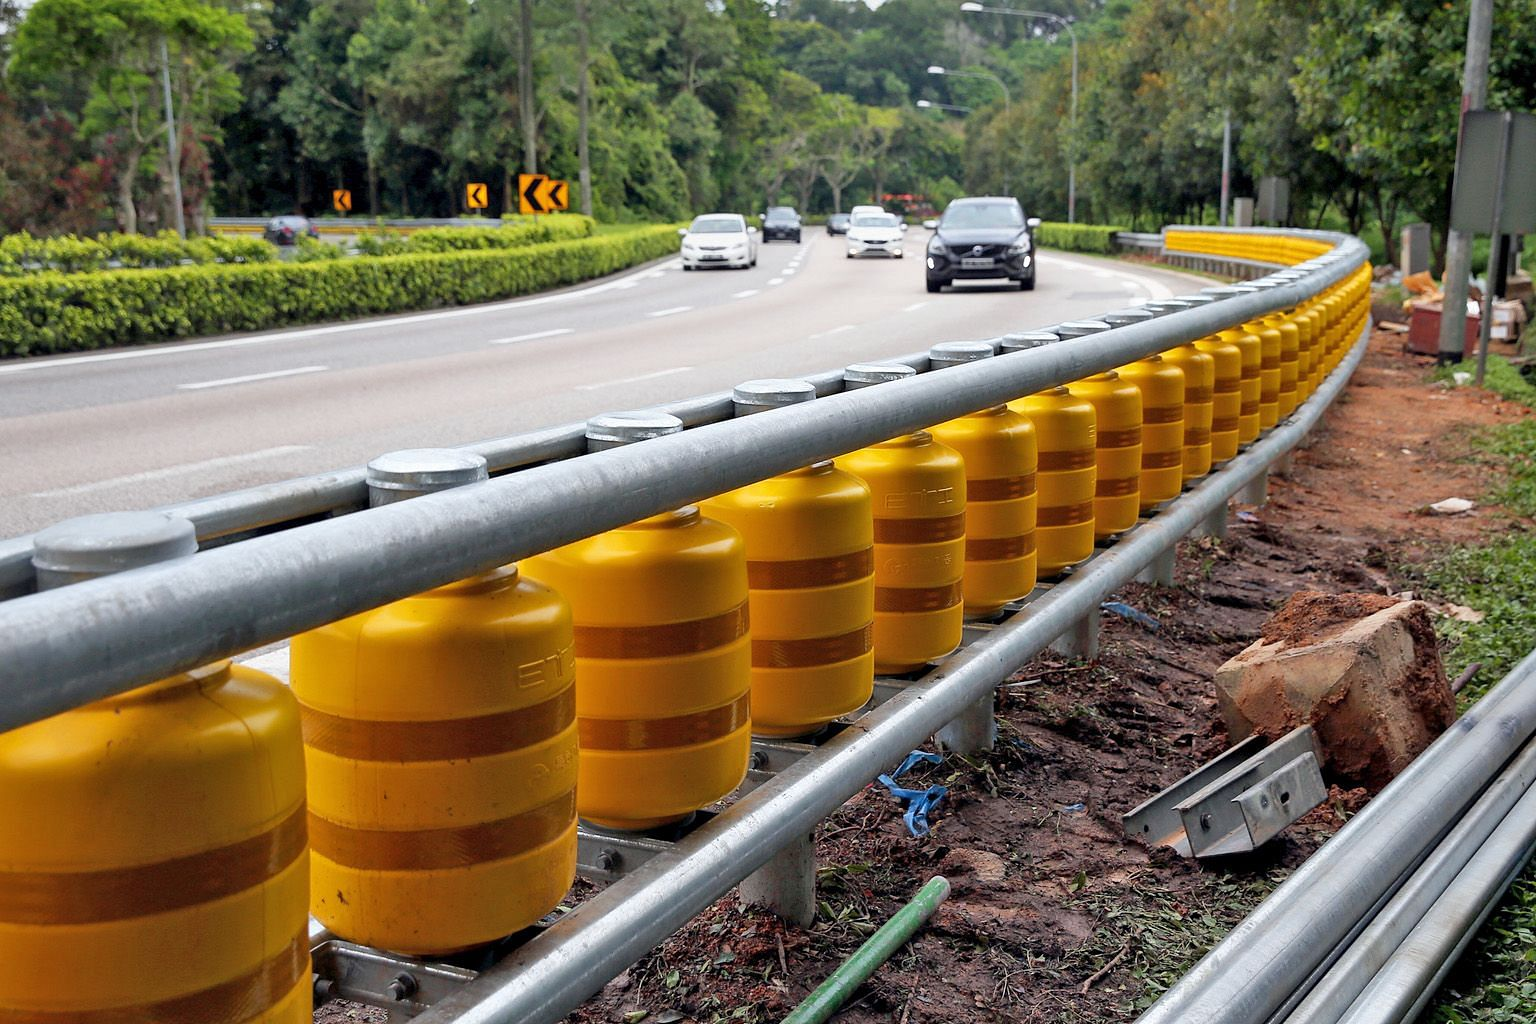 They may look strange but these new guardrails, called a rolling barrier system, help to absorb and deflect impact from a motor vehicle upon collision. This system of guardrails was spotted along a slip road leading to the Bukit Timah Expressway in t